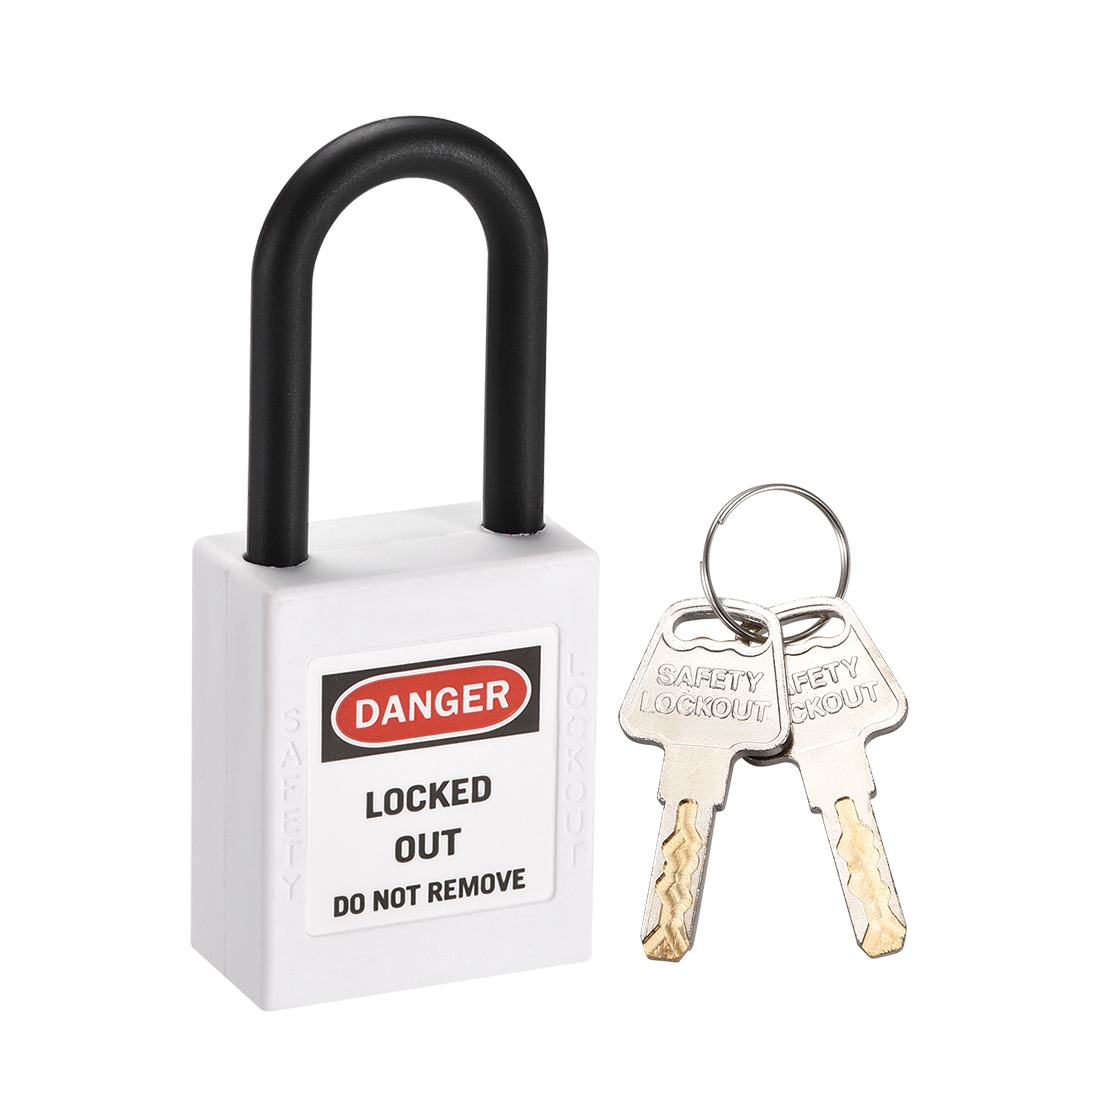 Lockout Tagout Locks, 1-1/2 Inch Shackle Key Different Safety Padlock White